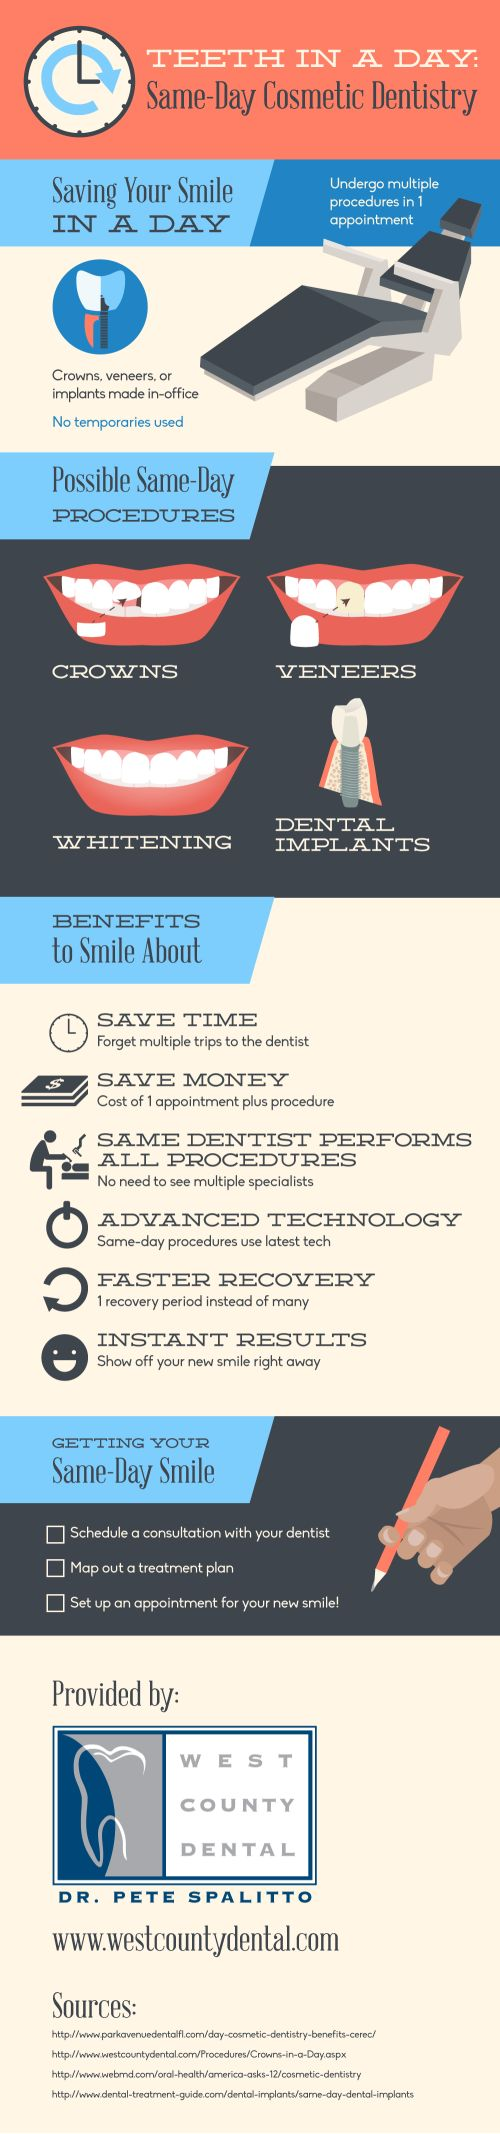 Forget multiple trips to the dentist! Advanced technology used in cosmetic dentistry allows many procedures to be done in just 1 visit. Click over to this infographic from a same day dental implant provider in St. Louis to read about same day cosmetic procedures.